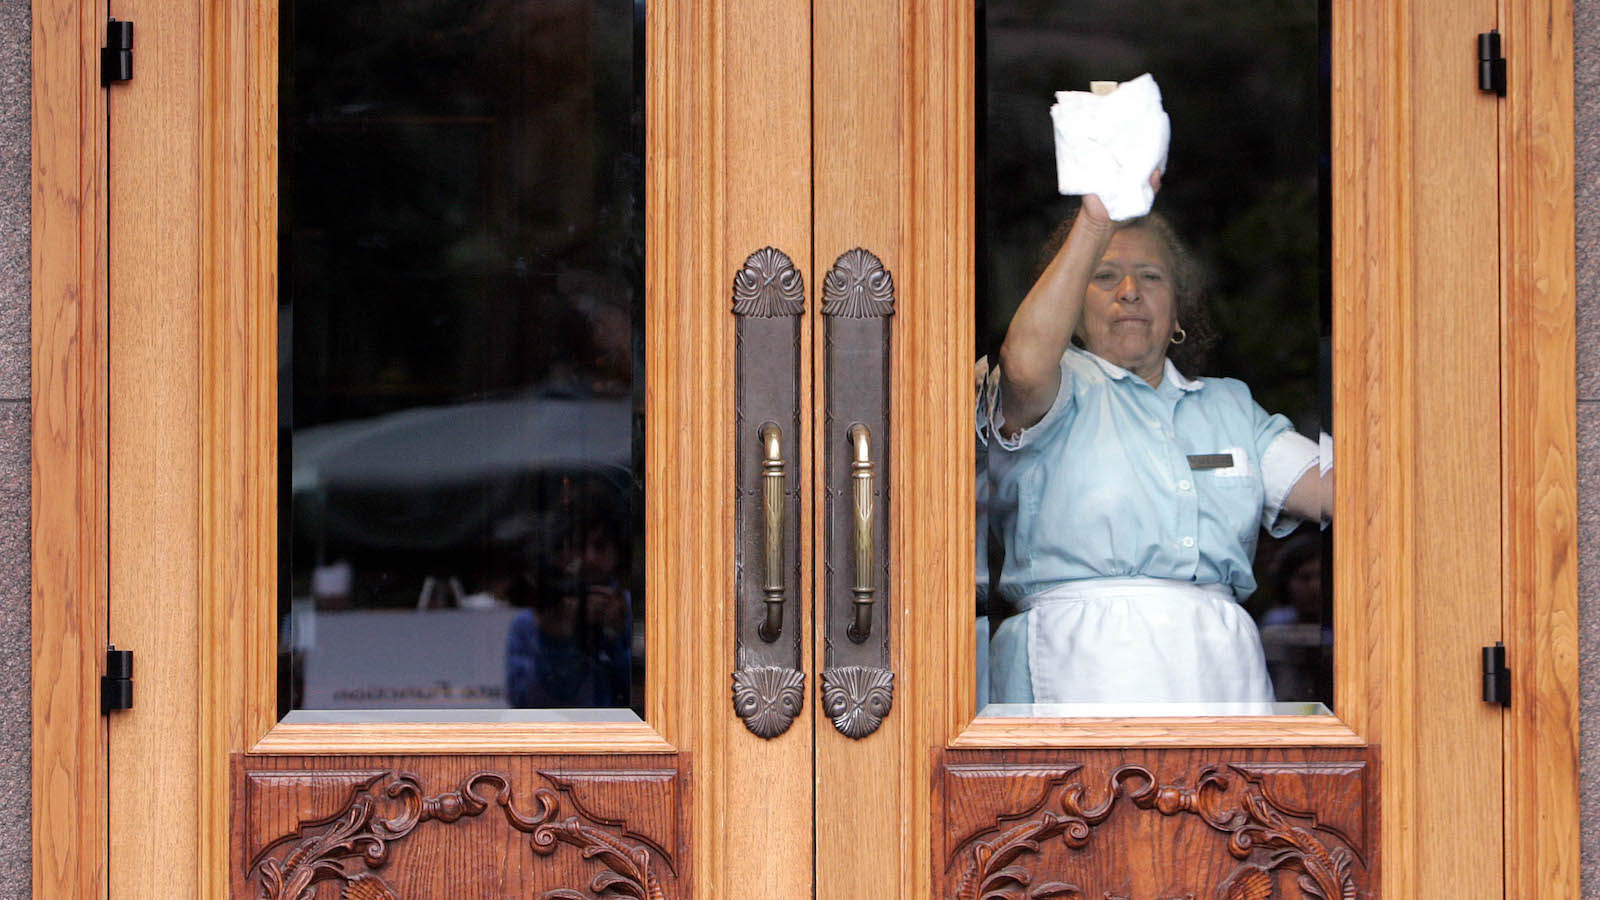 An unidentified maid cleans the windows on doors that participants will enter and exit during the annual Allen & Co. media conference, Wednesday, July 12, 2006, in Sun Valley, Idaho. The conference kicked off last night. (AP Photo/Elaine Thompson)